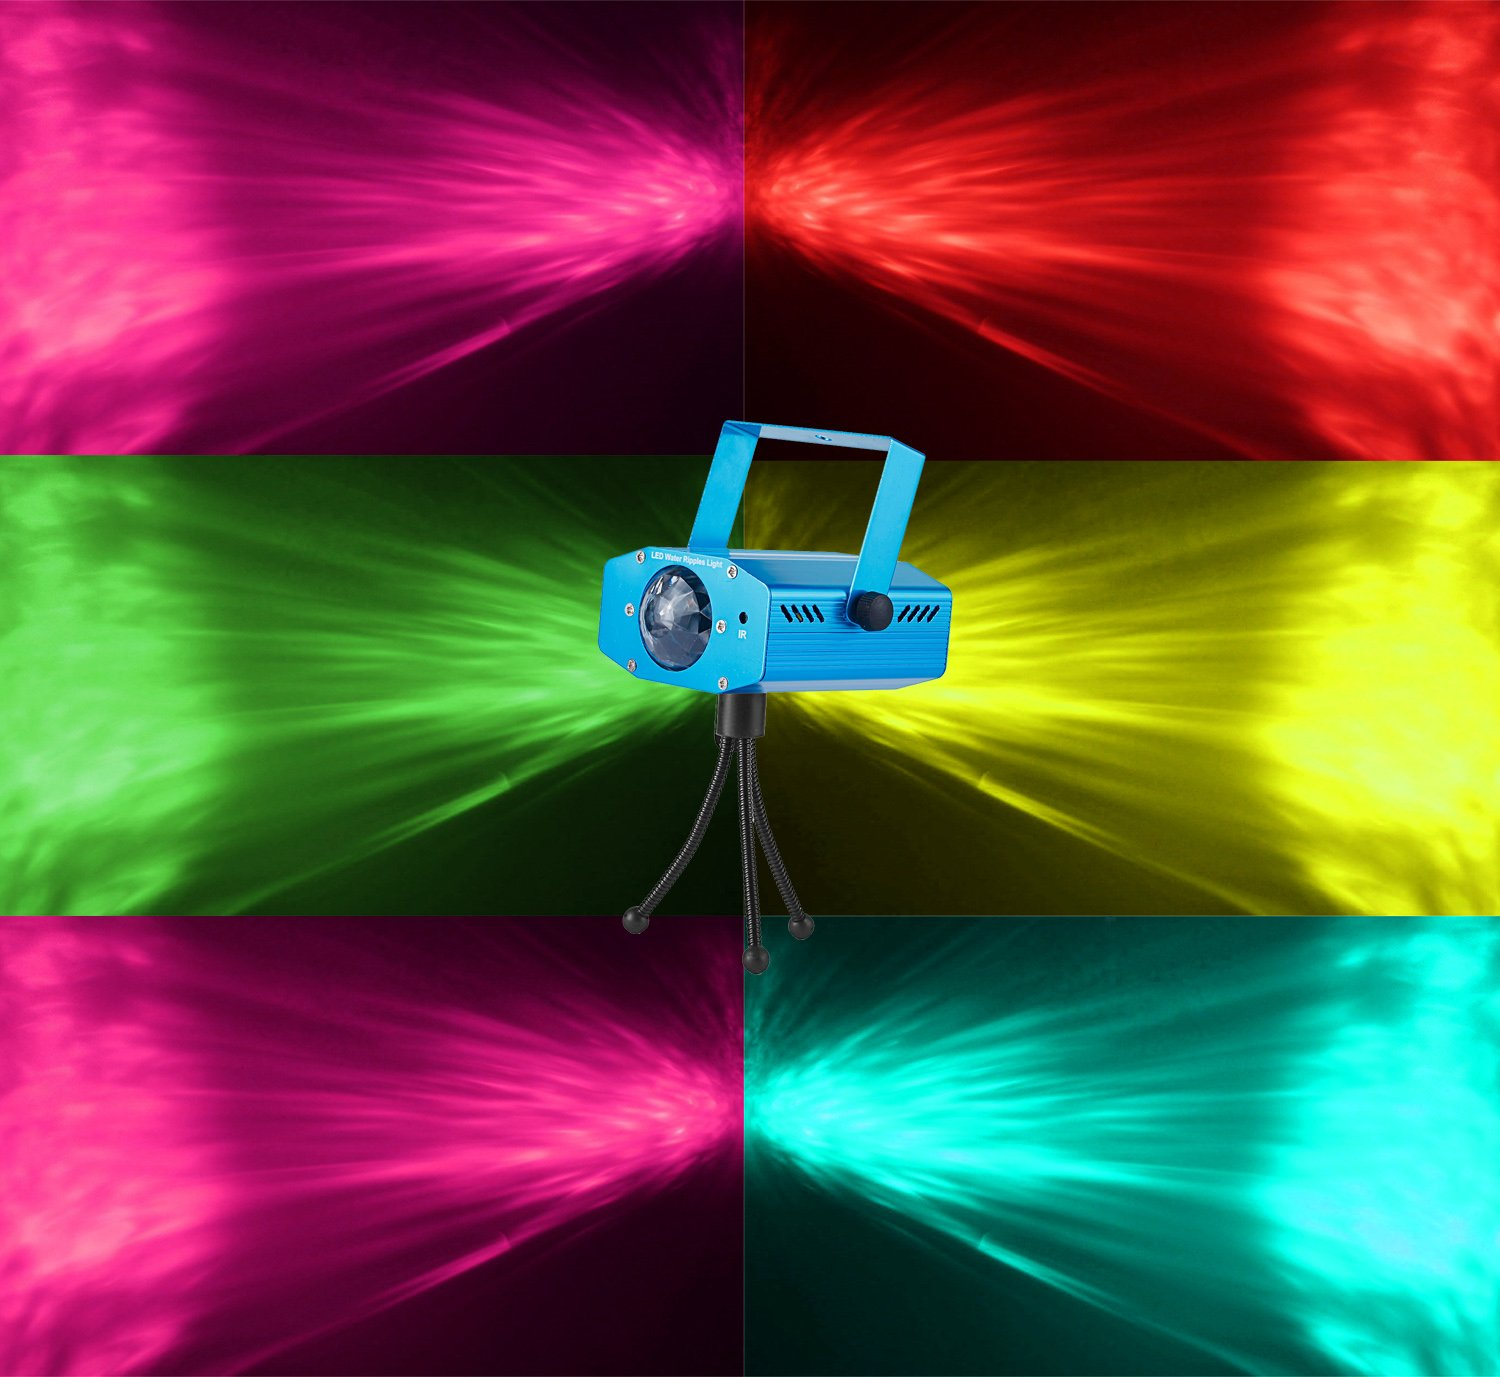 Party Projector Stage Light, PEMOTech 7-Color Ocean Wave Sound Activated Strobe Light Disco Ball Light Remote Control LED Projector Light for Party, Disco, DJ, KTV, Club, Wedding, Christmas by PEMOTech (Image #2)